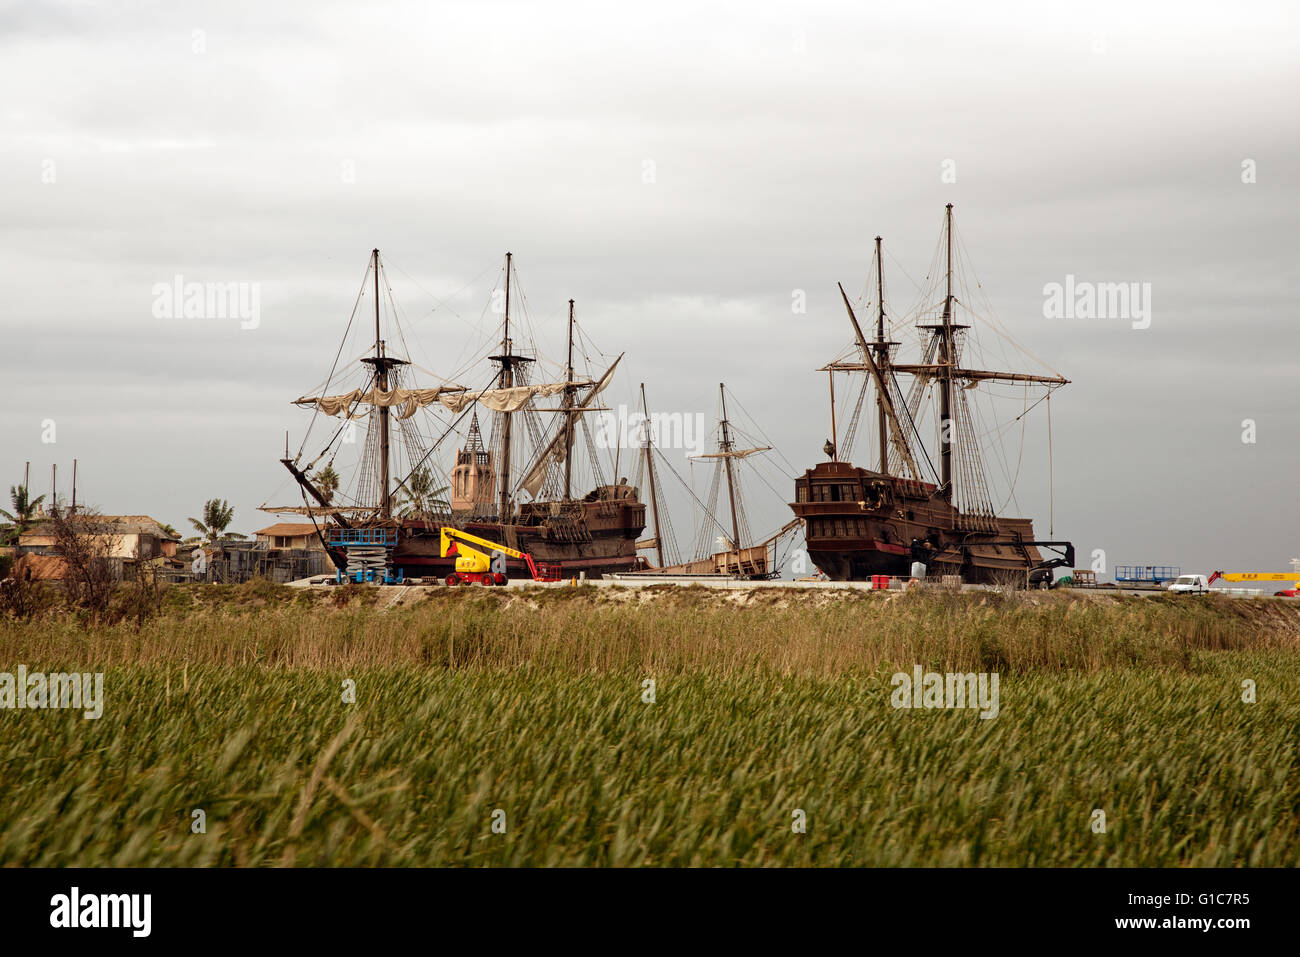 FAURE WESTERN CAPE SOUTH AFRICA . A film set of old sailing ships at Cape Town film studios at Faure near Cape Town - Stock Image